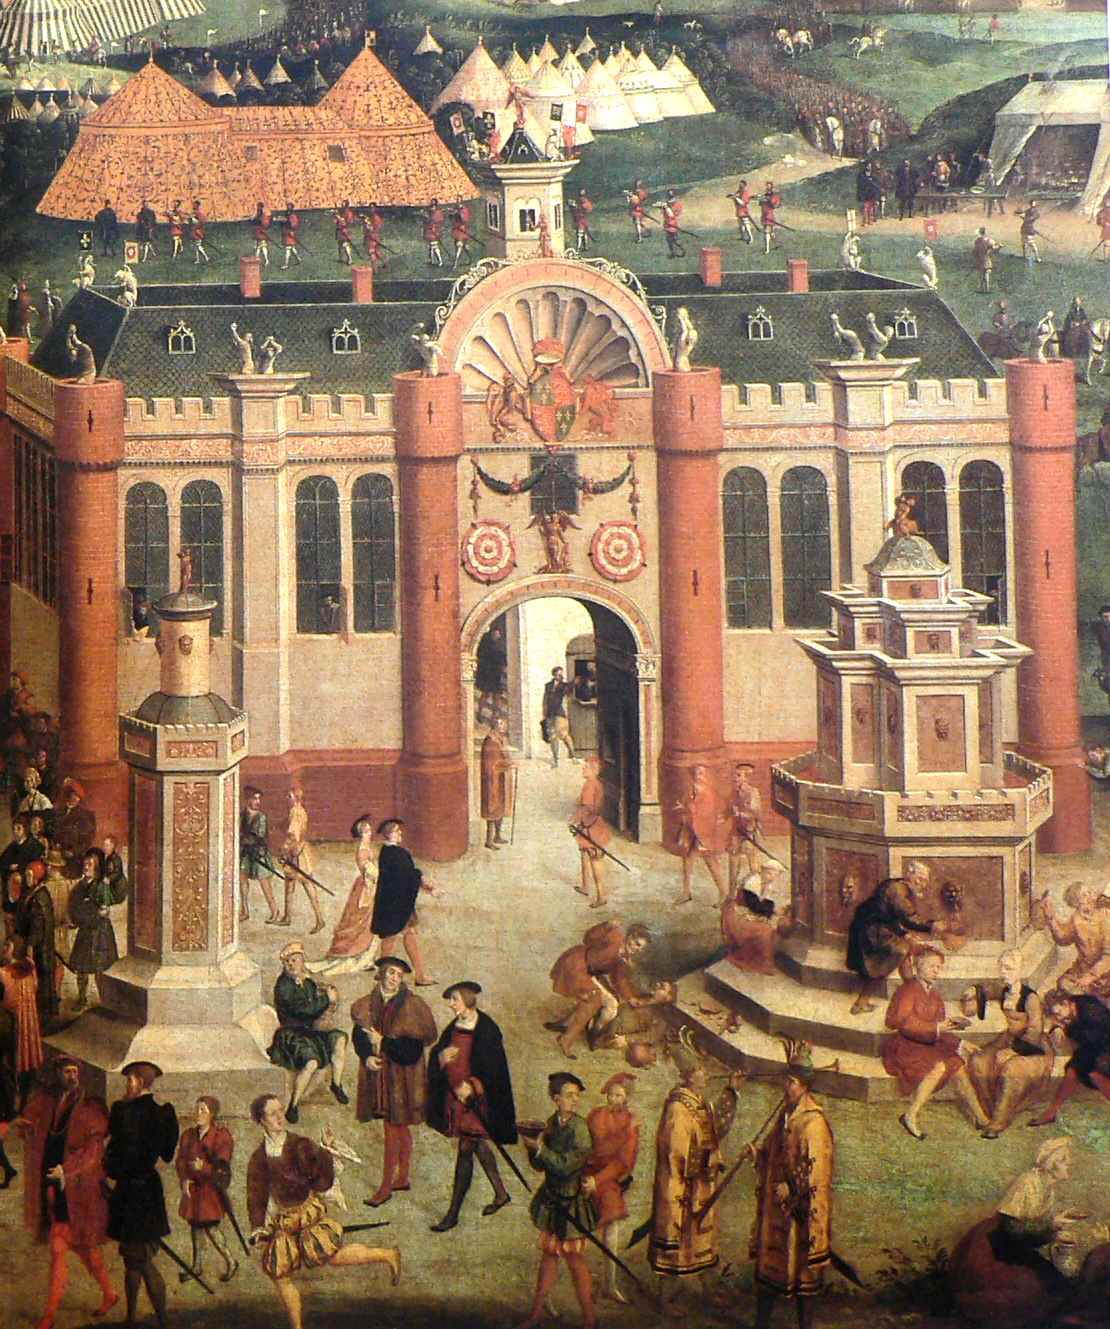 Lost Art: Field of the Cloth of Gold